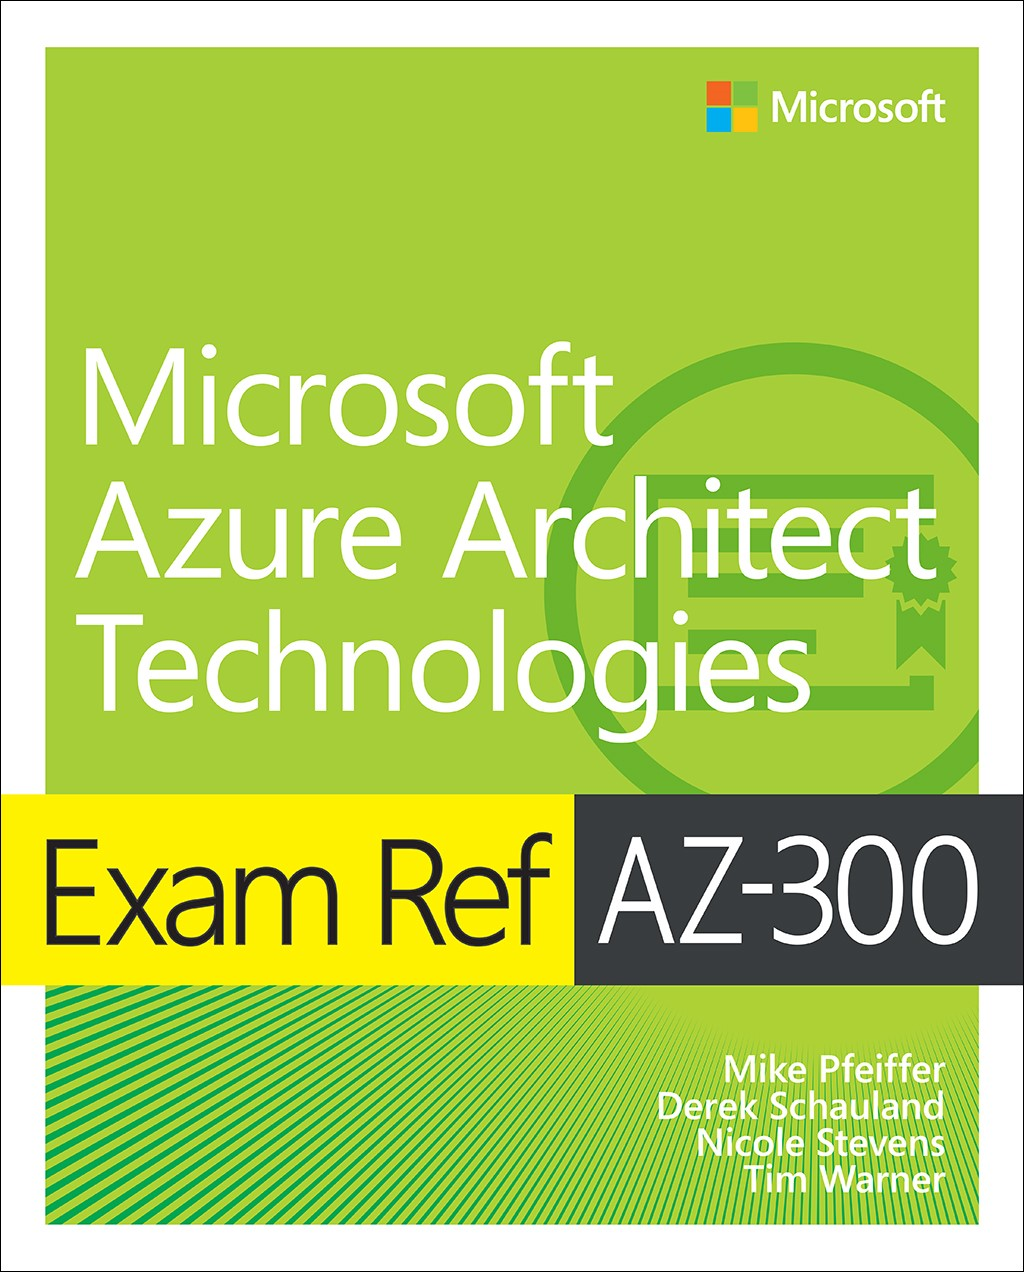 Exam Ref DEV-450 Salesforce Programmatic Development using Apex and Visualforce